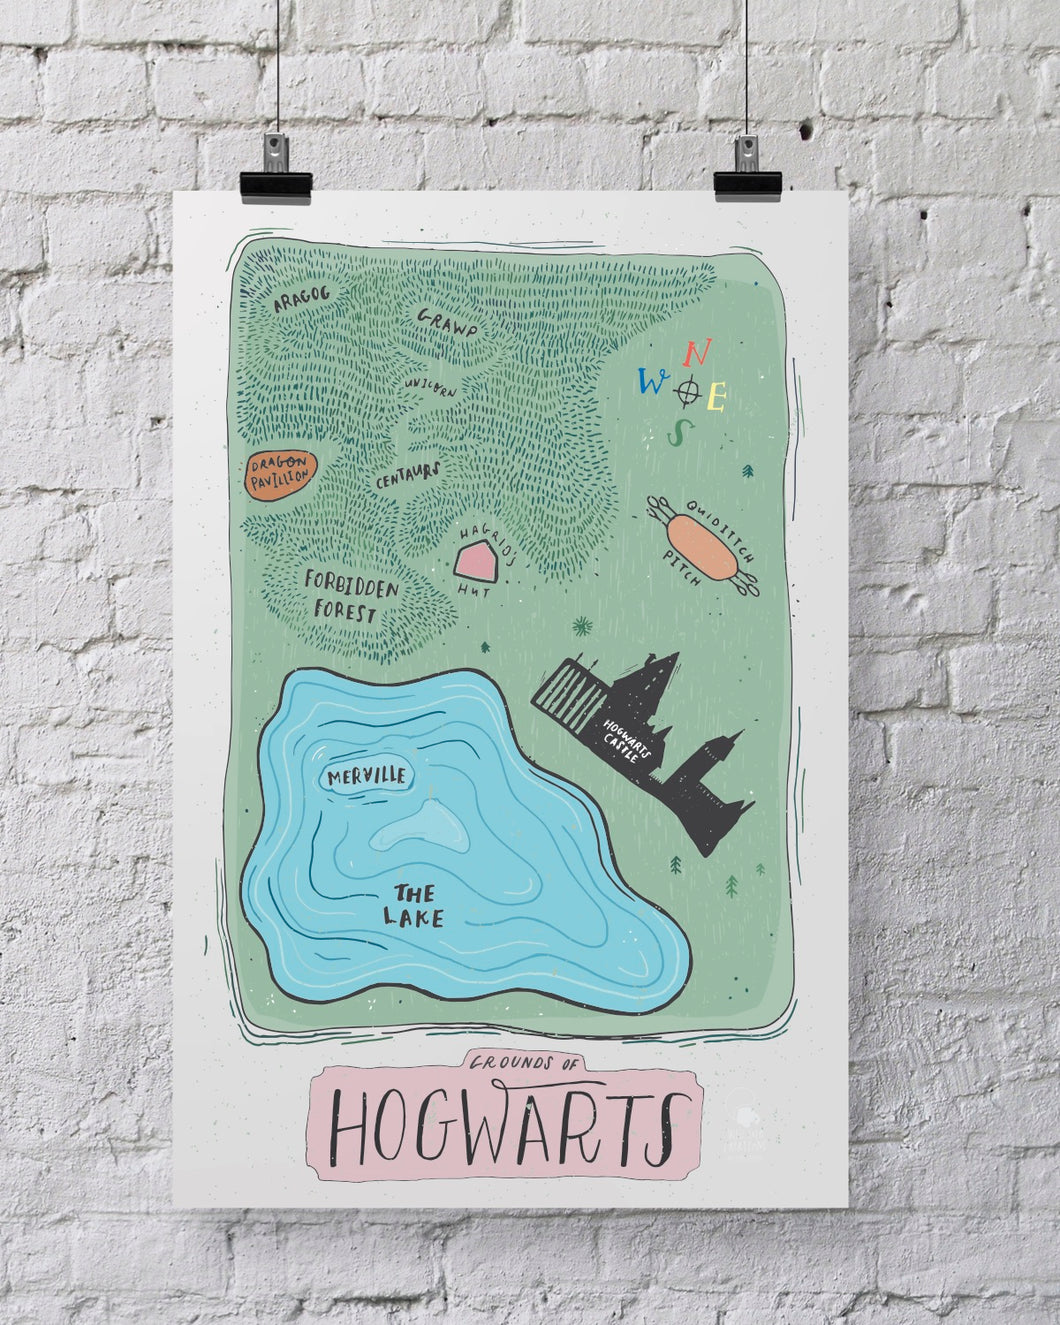 Hogwarts Map of Grounds